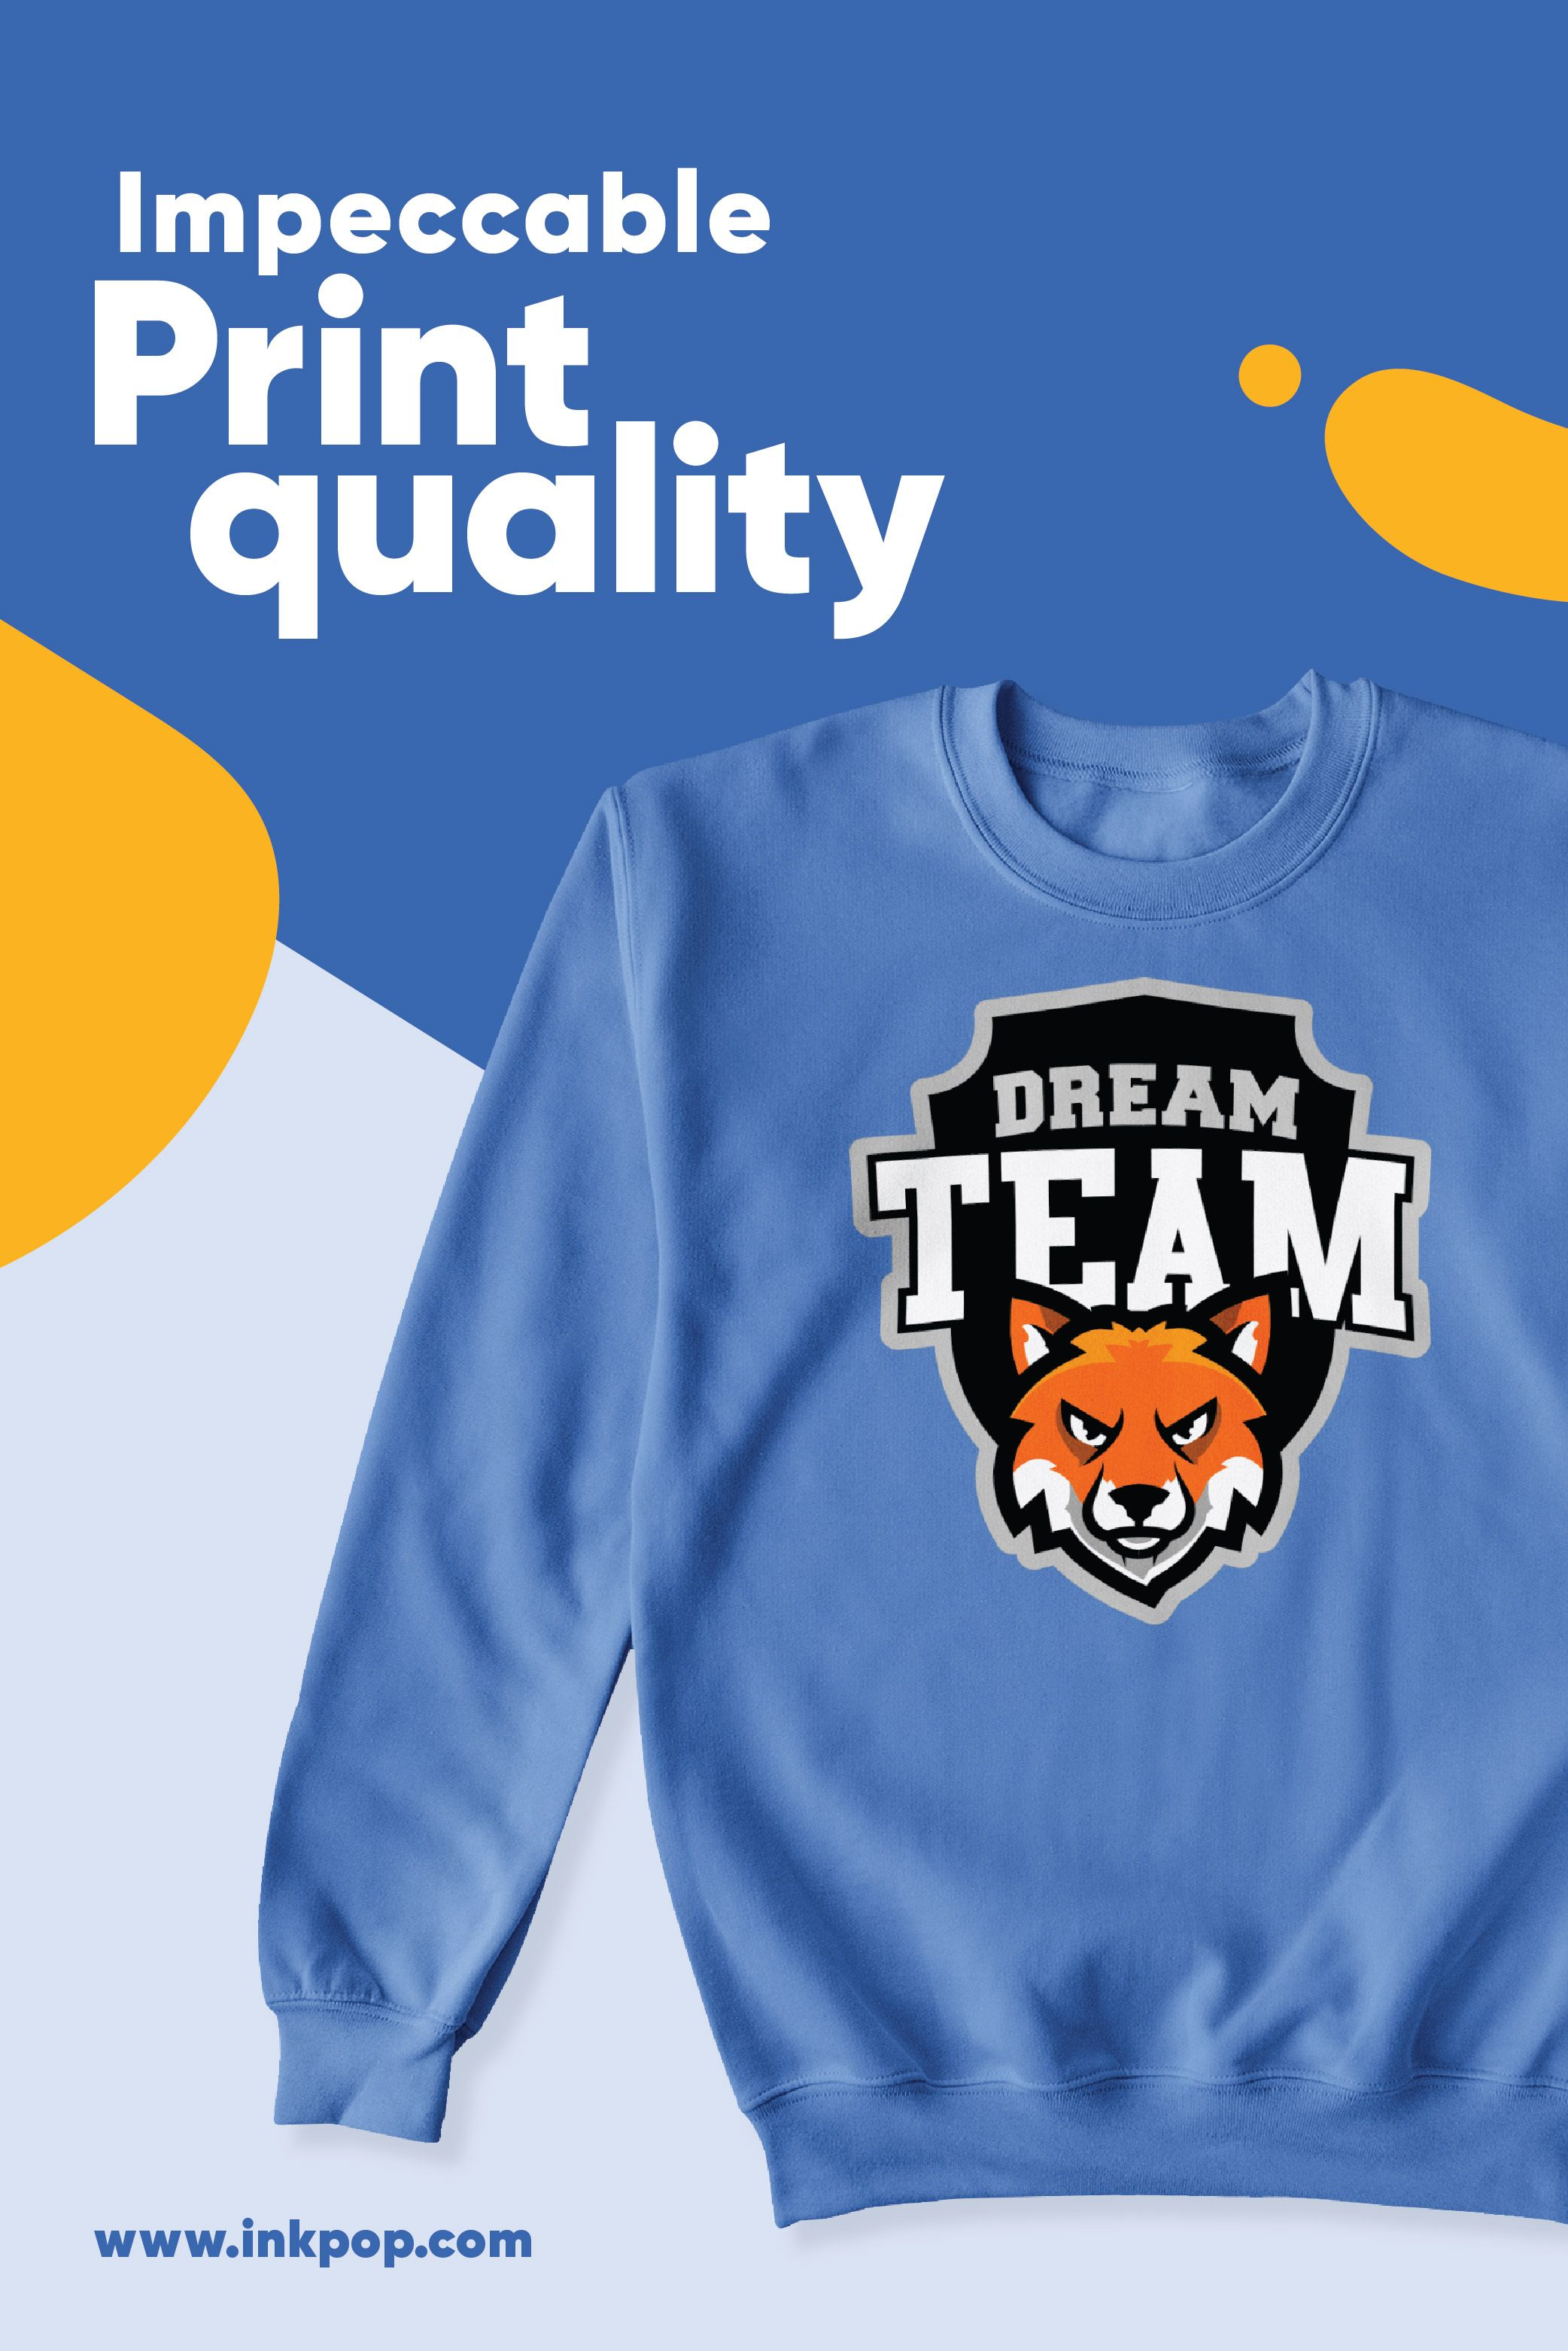 Custom Printed Apparel for sports teams, Awesomely low